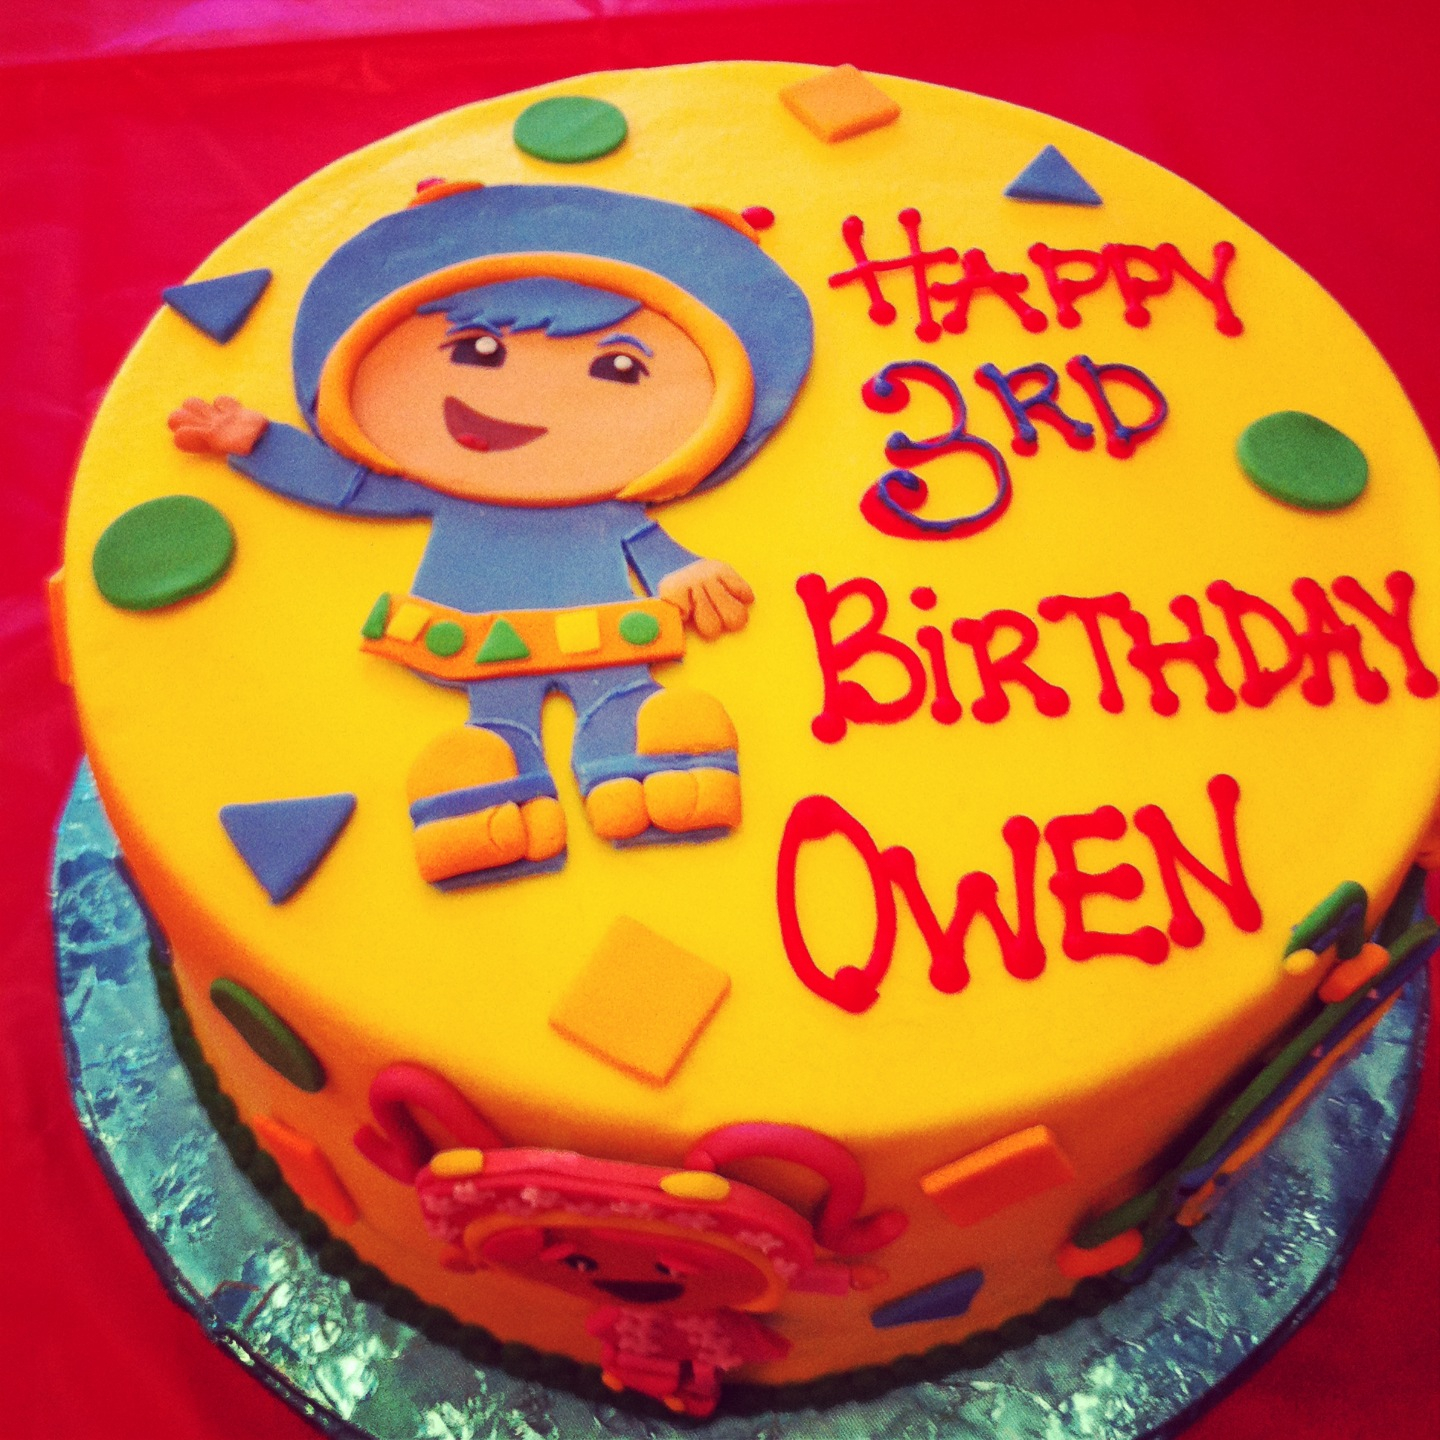 Team Umizoomi Birthday Cake 7 Team Umizoomi Birthday Cakes Boys Photo Team Umizoomi Birthday